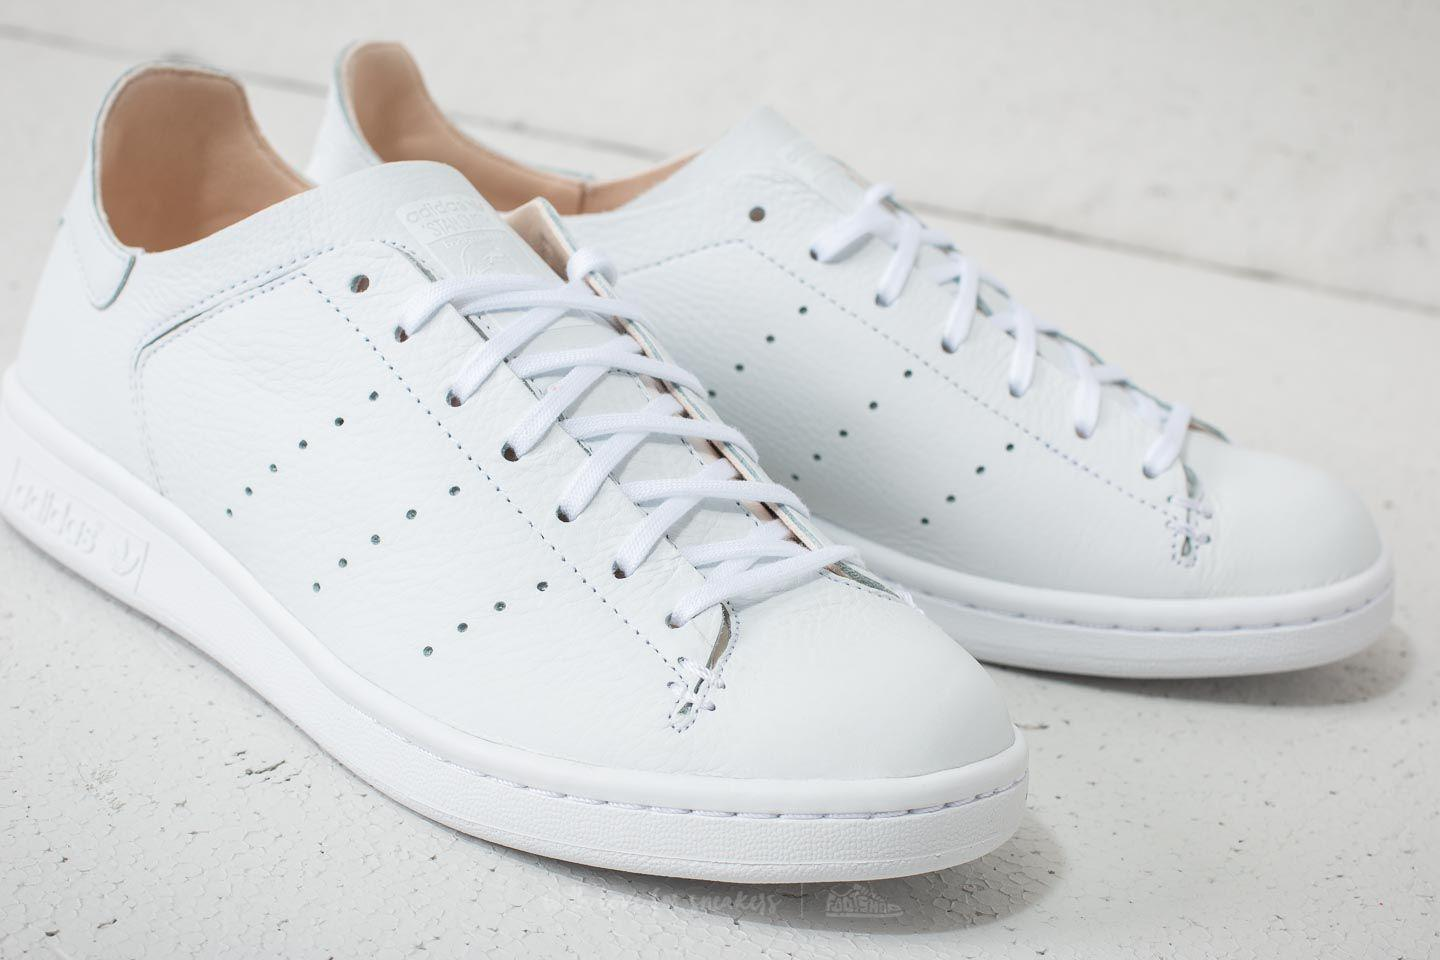 d4740d0af Gallery. Previously sold at: Footshop · Men's Adidas Stan Smith Sneakers